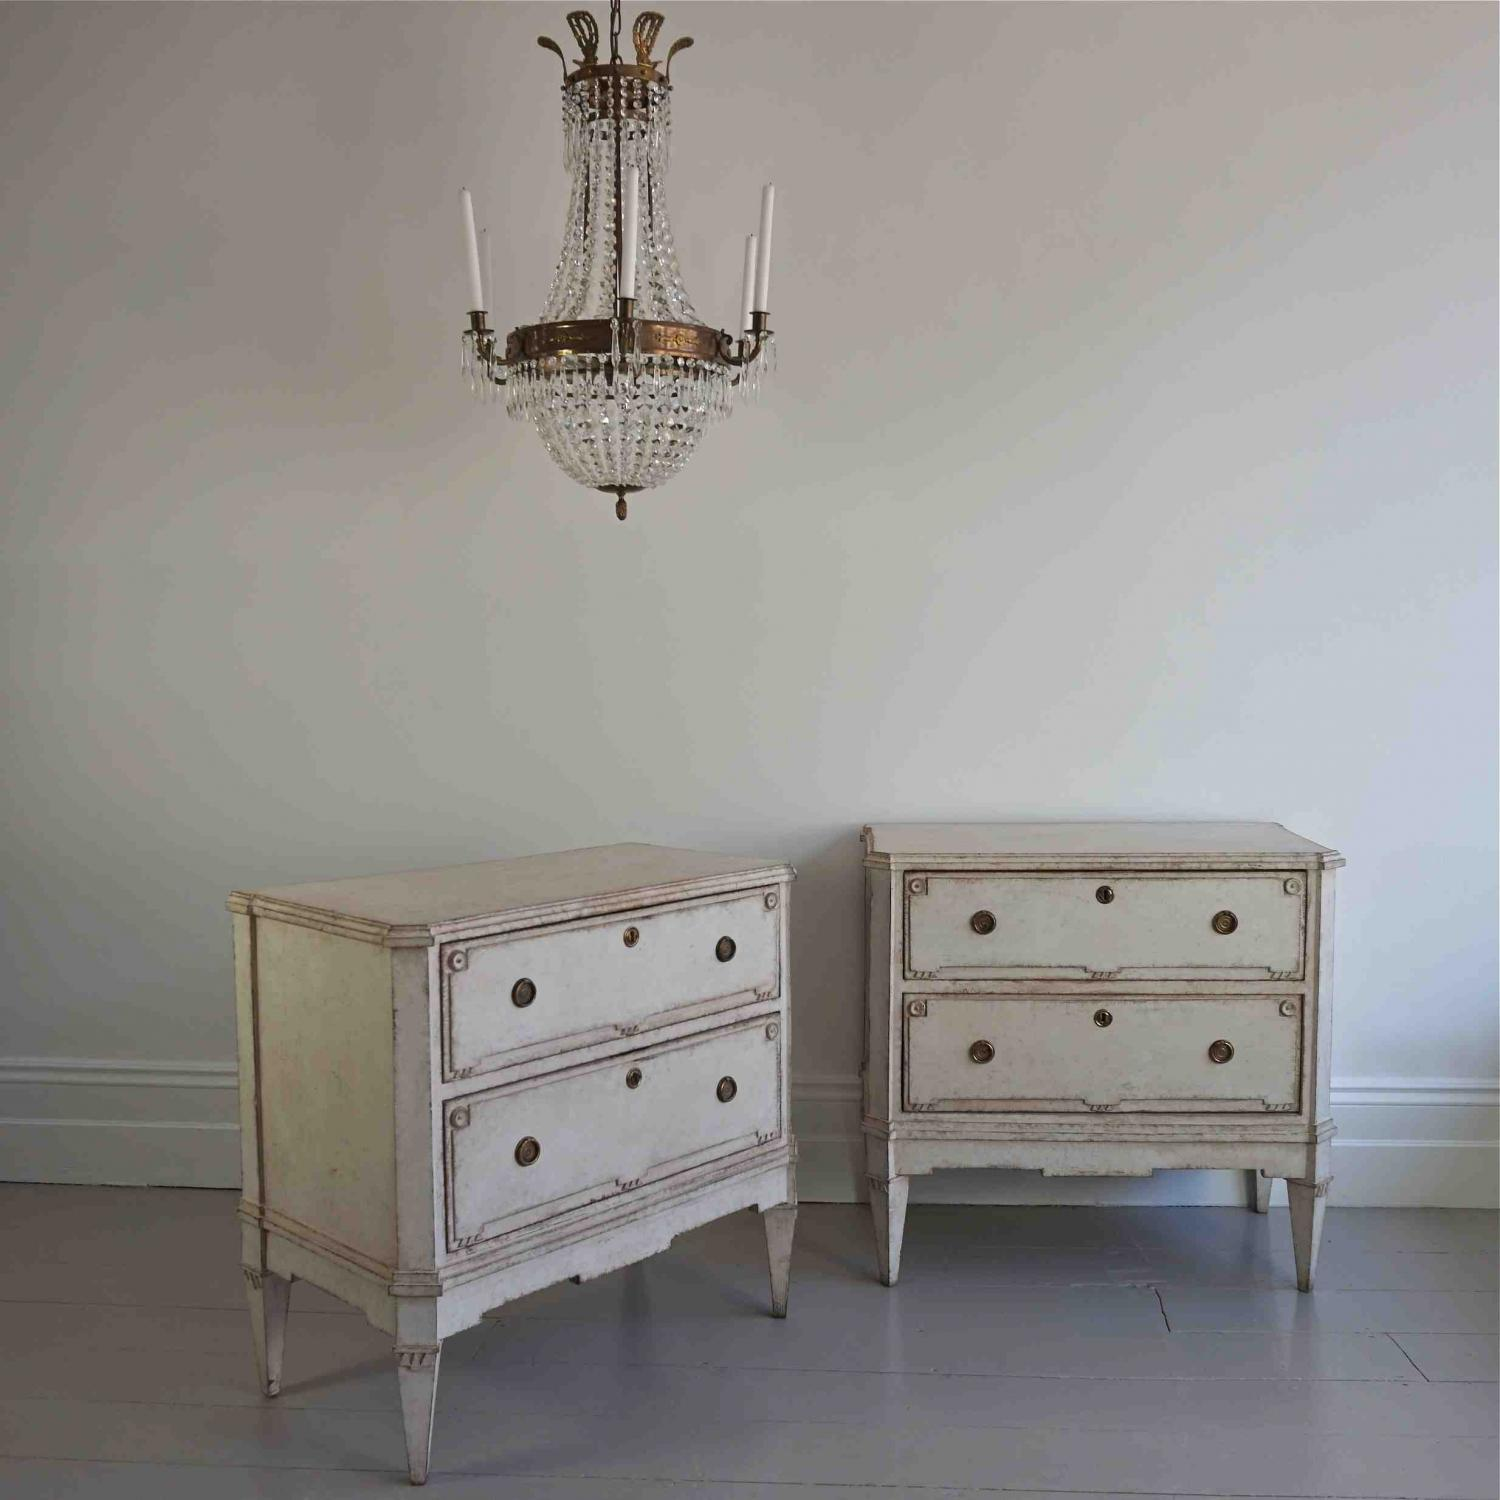 PAIR OF VERY FINE SWEDISH BEDSIDE CHESTS